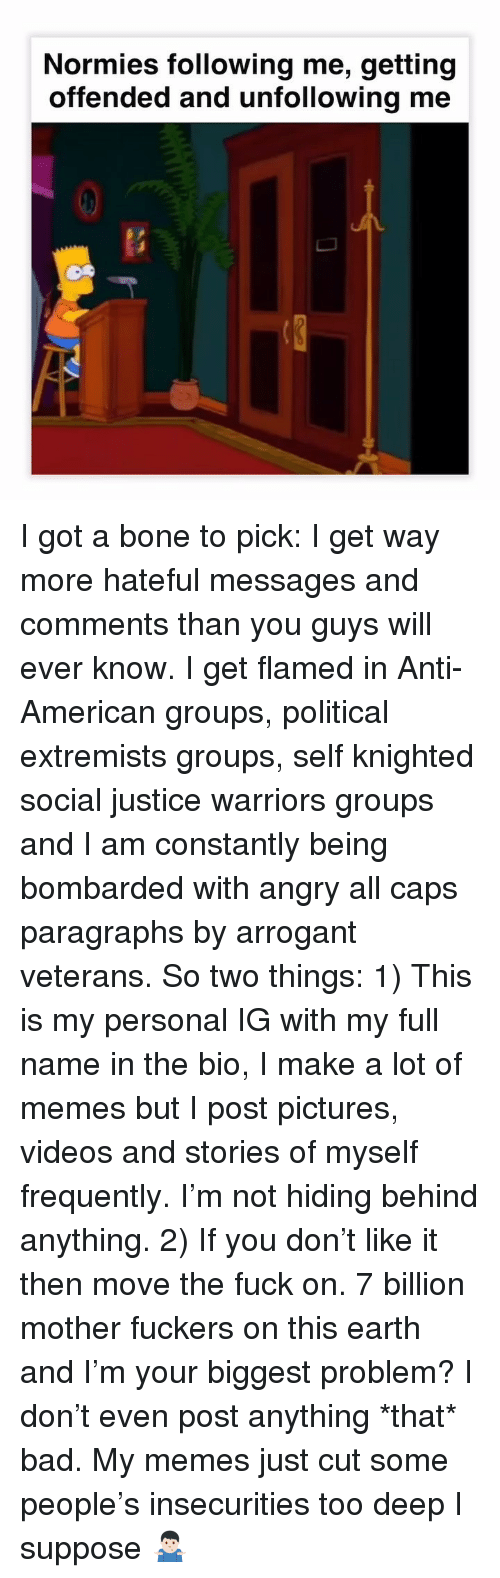 Bad, Memes, and Videos: Normies following me, getting  offended and unfollowing me  0 I got a bone to pick: I get way more hateful messages and comments than you guys will ever know. I get flamed in Anti-American groups, political extremists groups, self knighted social justice warriors groups and I am constantly being bombarded with angry all caps paragraphs by arrogant veterans. So two things: 1) This is my personal IG with my full name in the bio, I make a lot of memes but I post pictures, videos and stories of myself frequently. I'm not hiding behind anything. 2) If you don't like it then move the fuck on. 7 billion mother fuckers on this earth and I'm your biggest problem? I don't even post anything *that* bad. My memes just cut some people's insecurities too deep I suppose 🤷🏻♂️